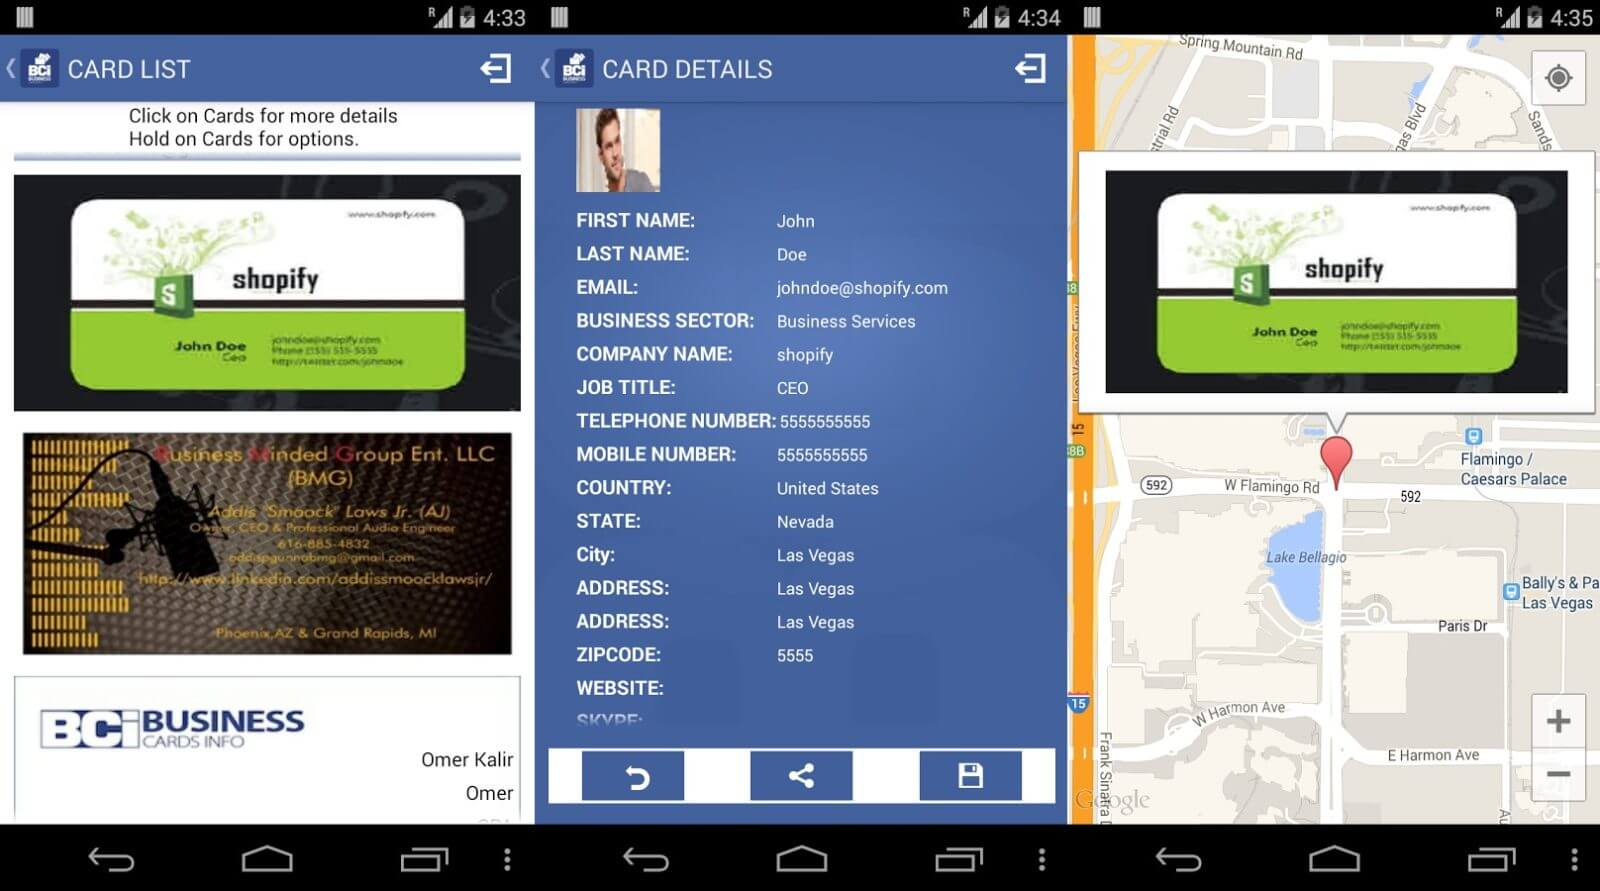 Schermate dell'app Business Card Info per Android